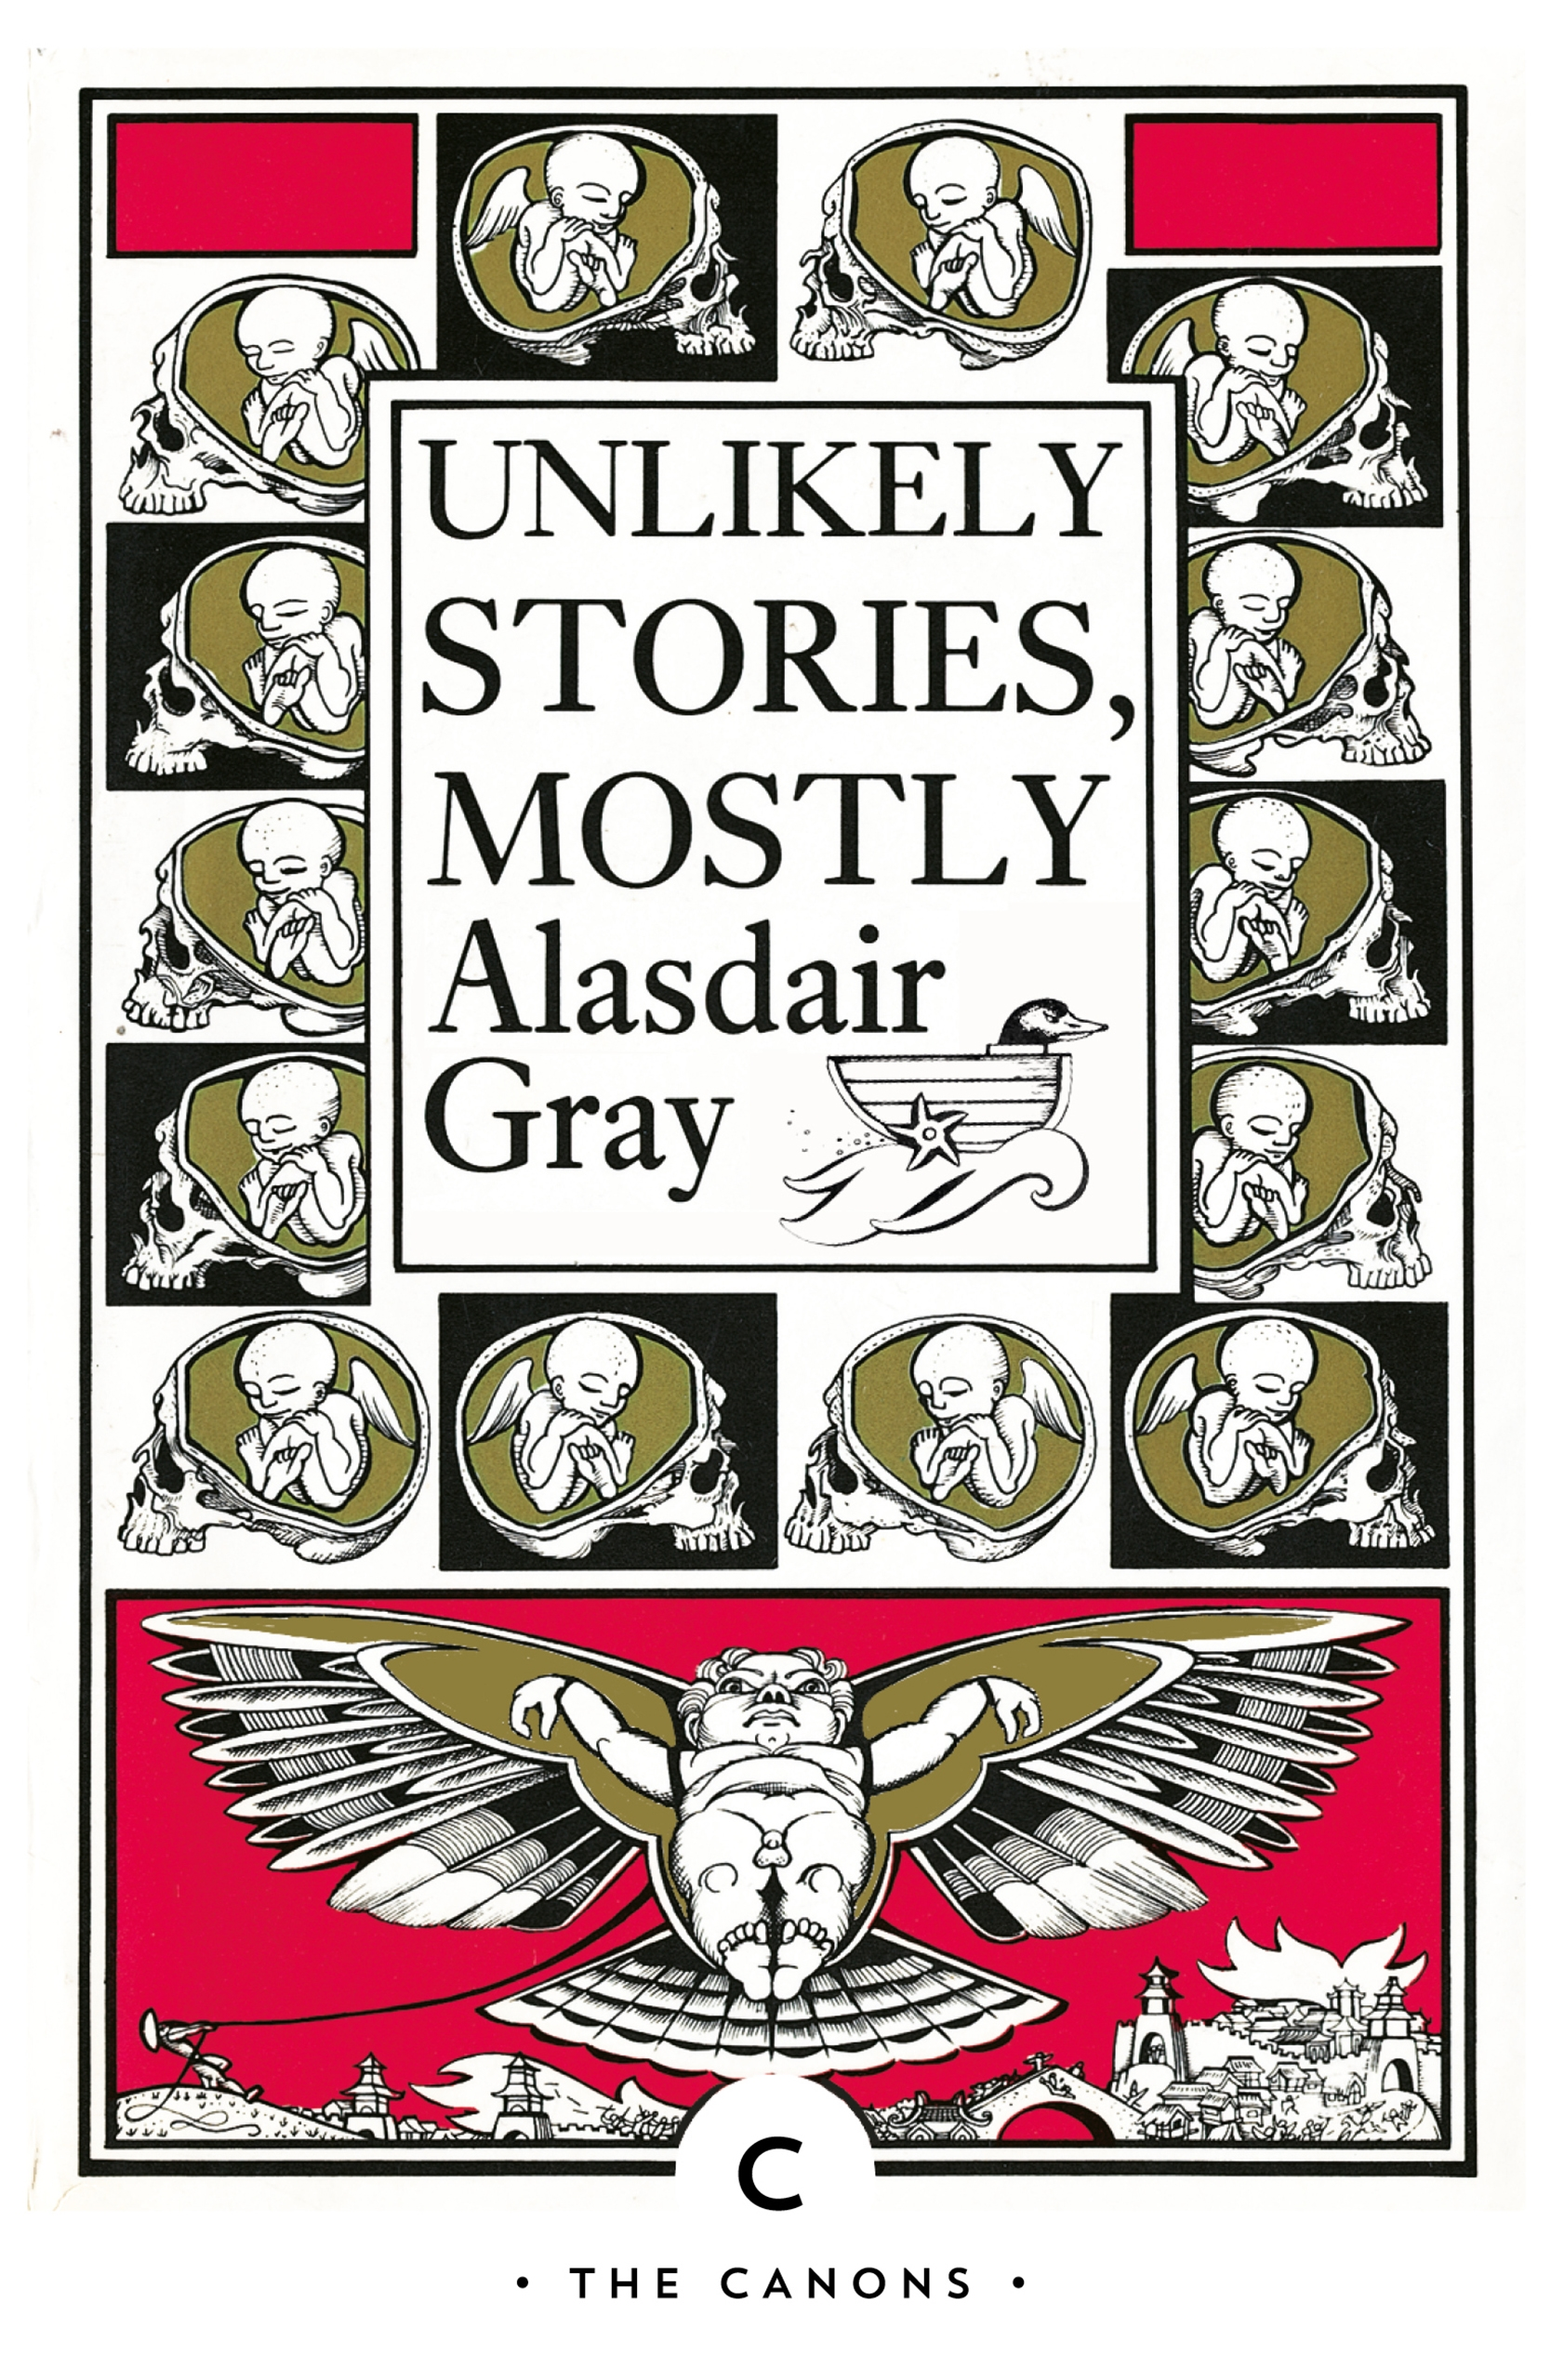 Unlikely Stories, Mostly by Alasdair Gray